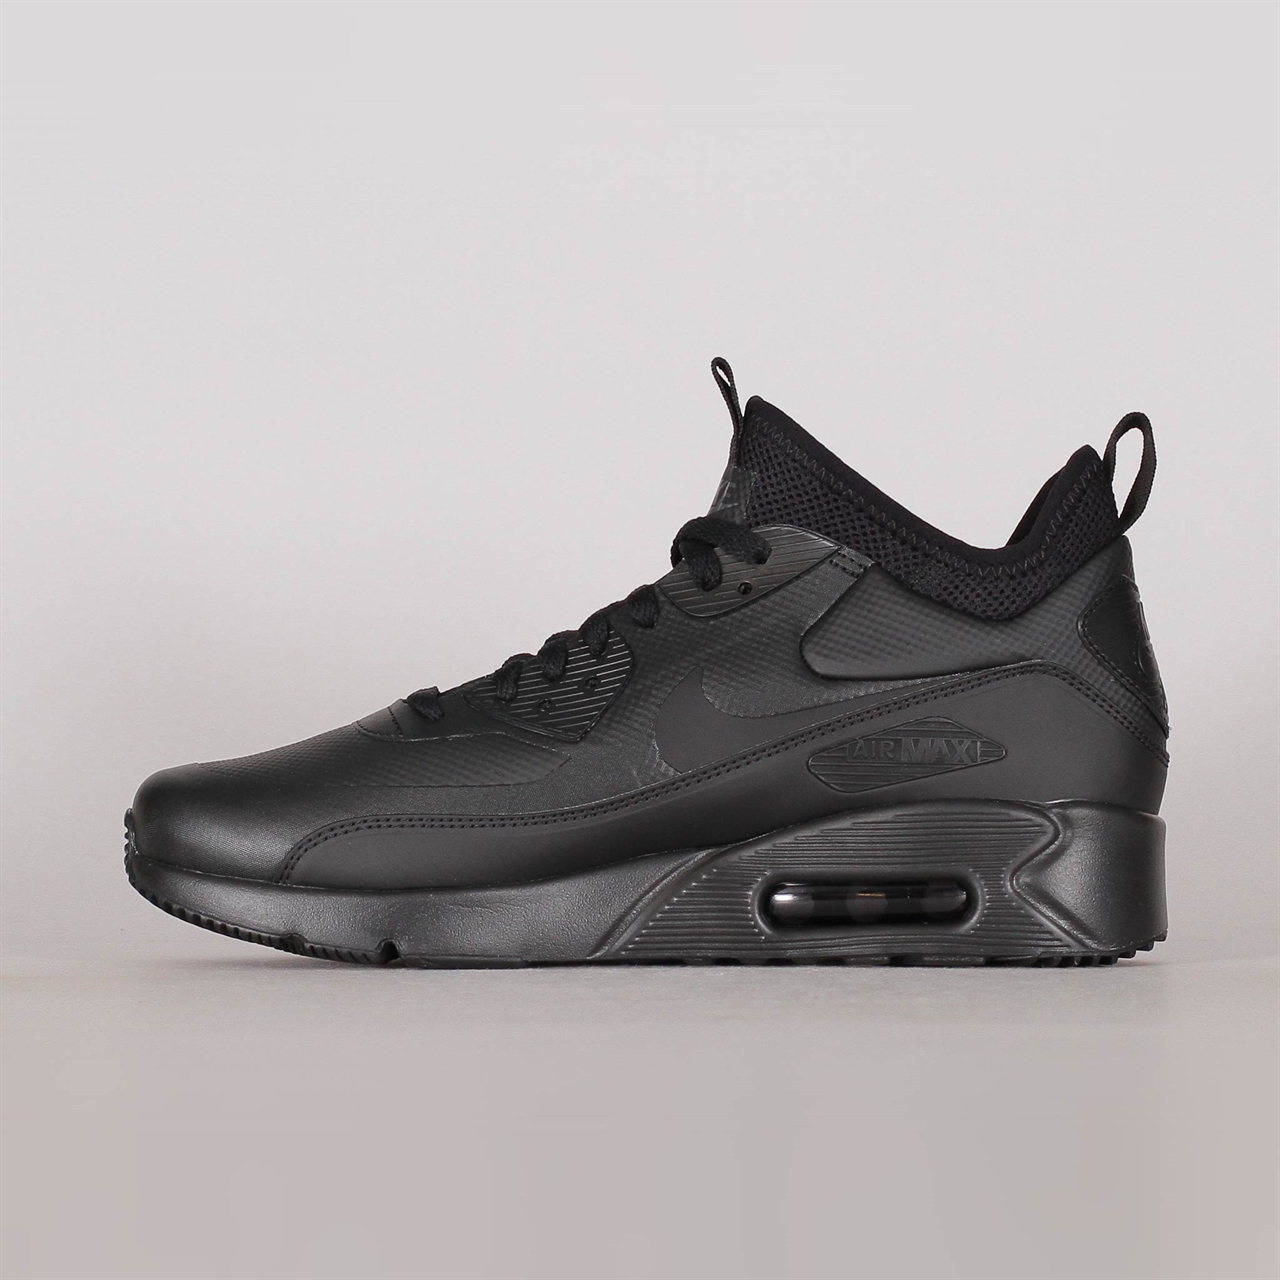 differently 51efa 8df5d NikeNike Air Max 90 Ultra Mid Winter (924458-004). 1